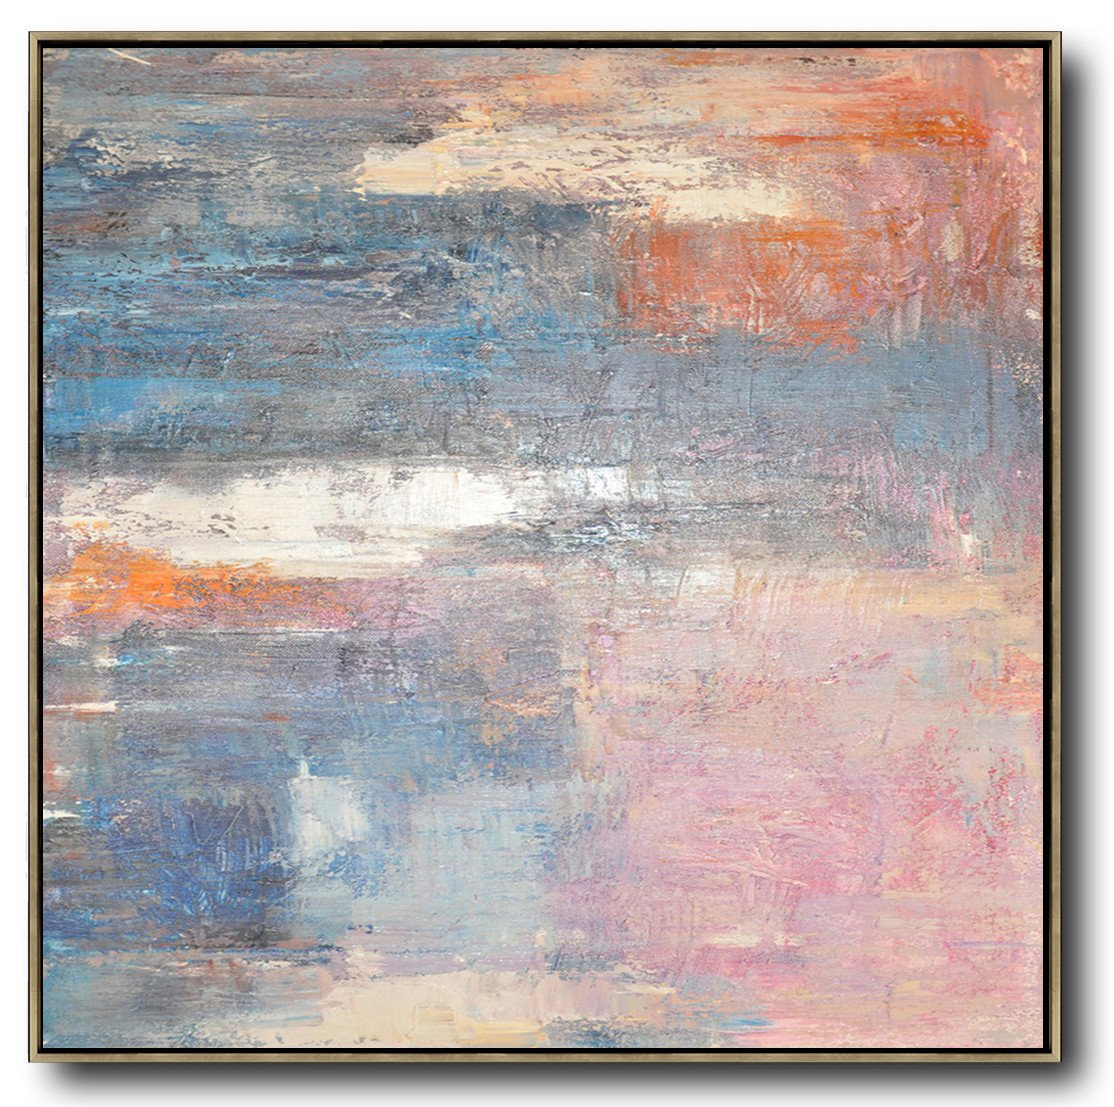 Large Abstract Art,Oversized Contemporary Art,Contemporary Abstract Painting,Pink,Blue,Orange,Beige.etc